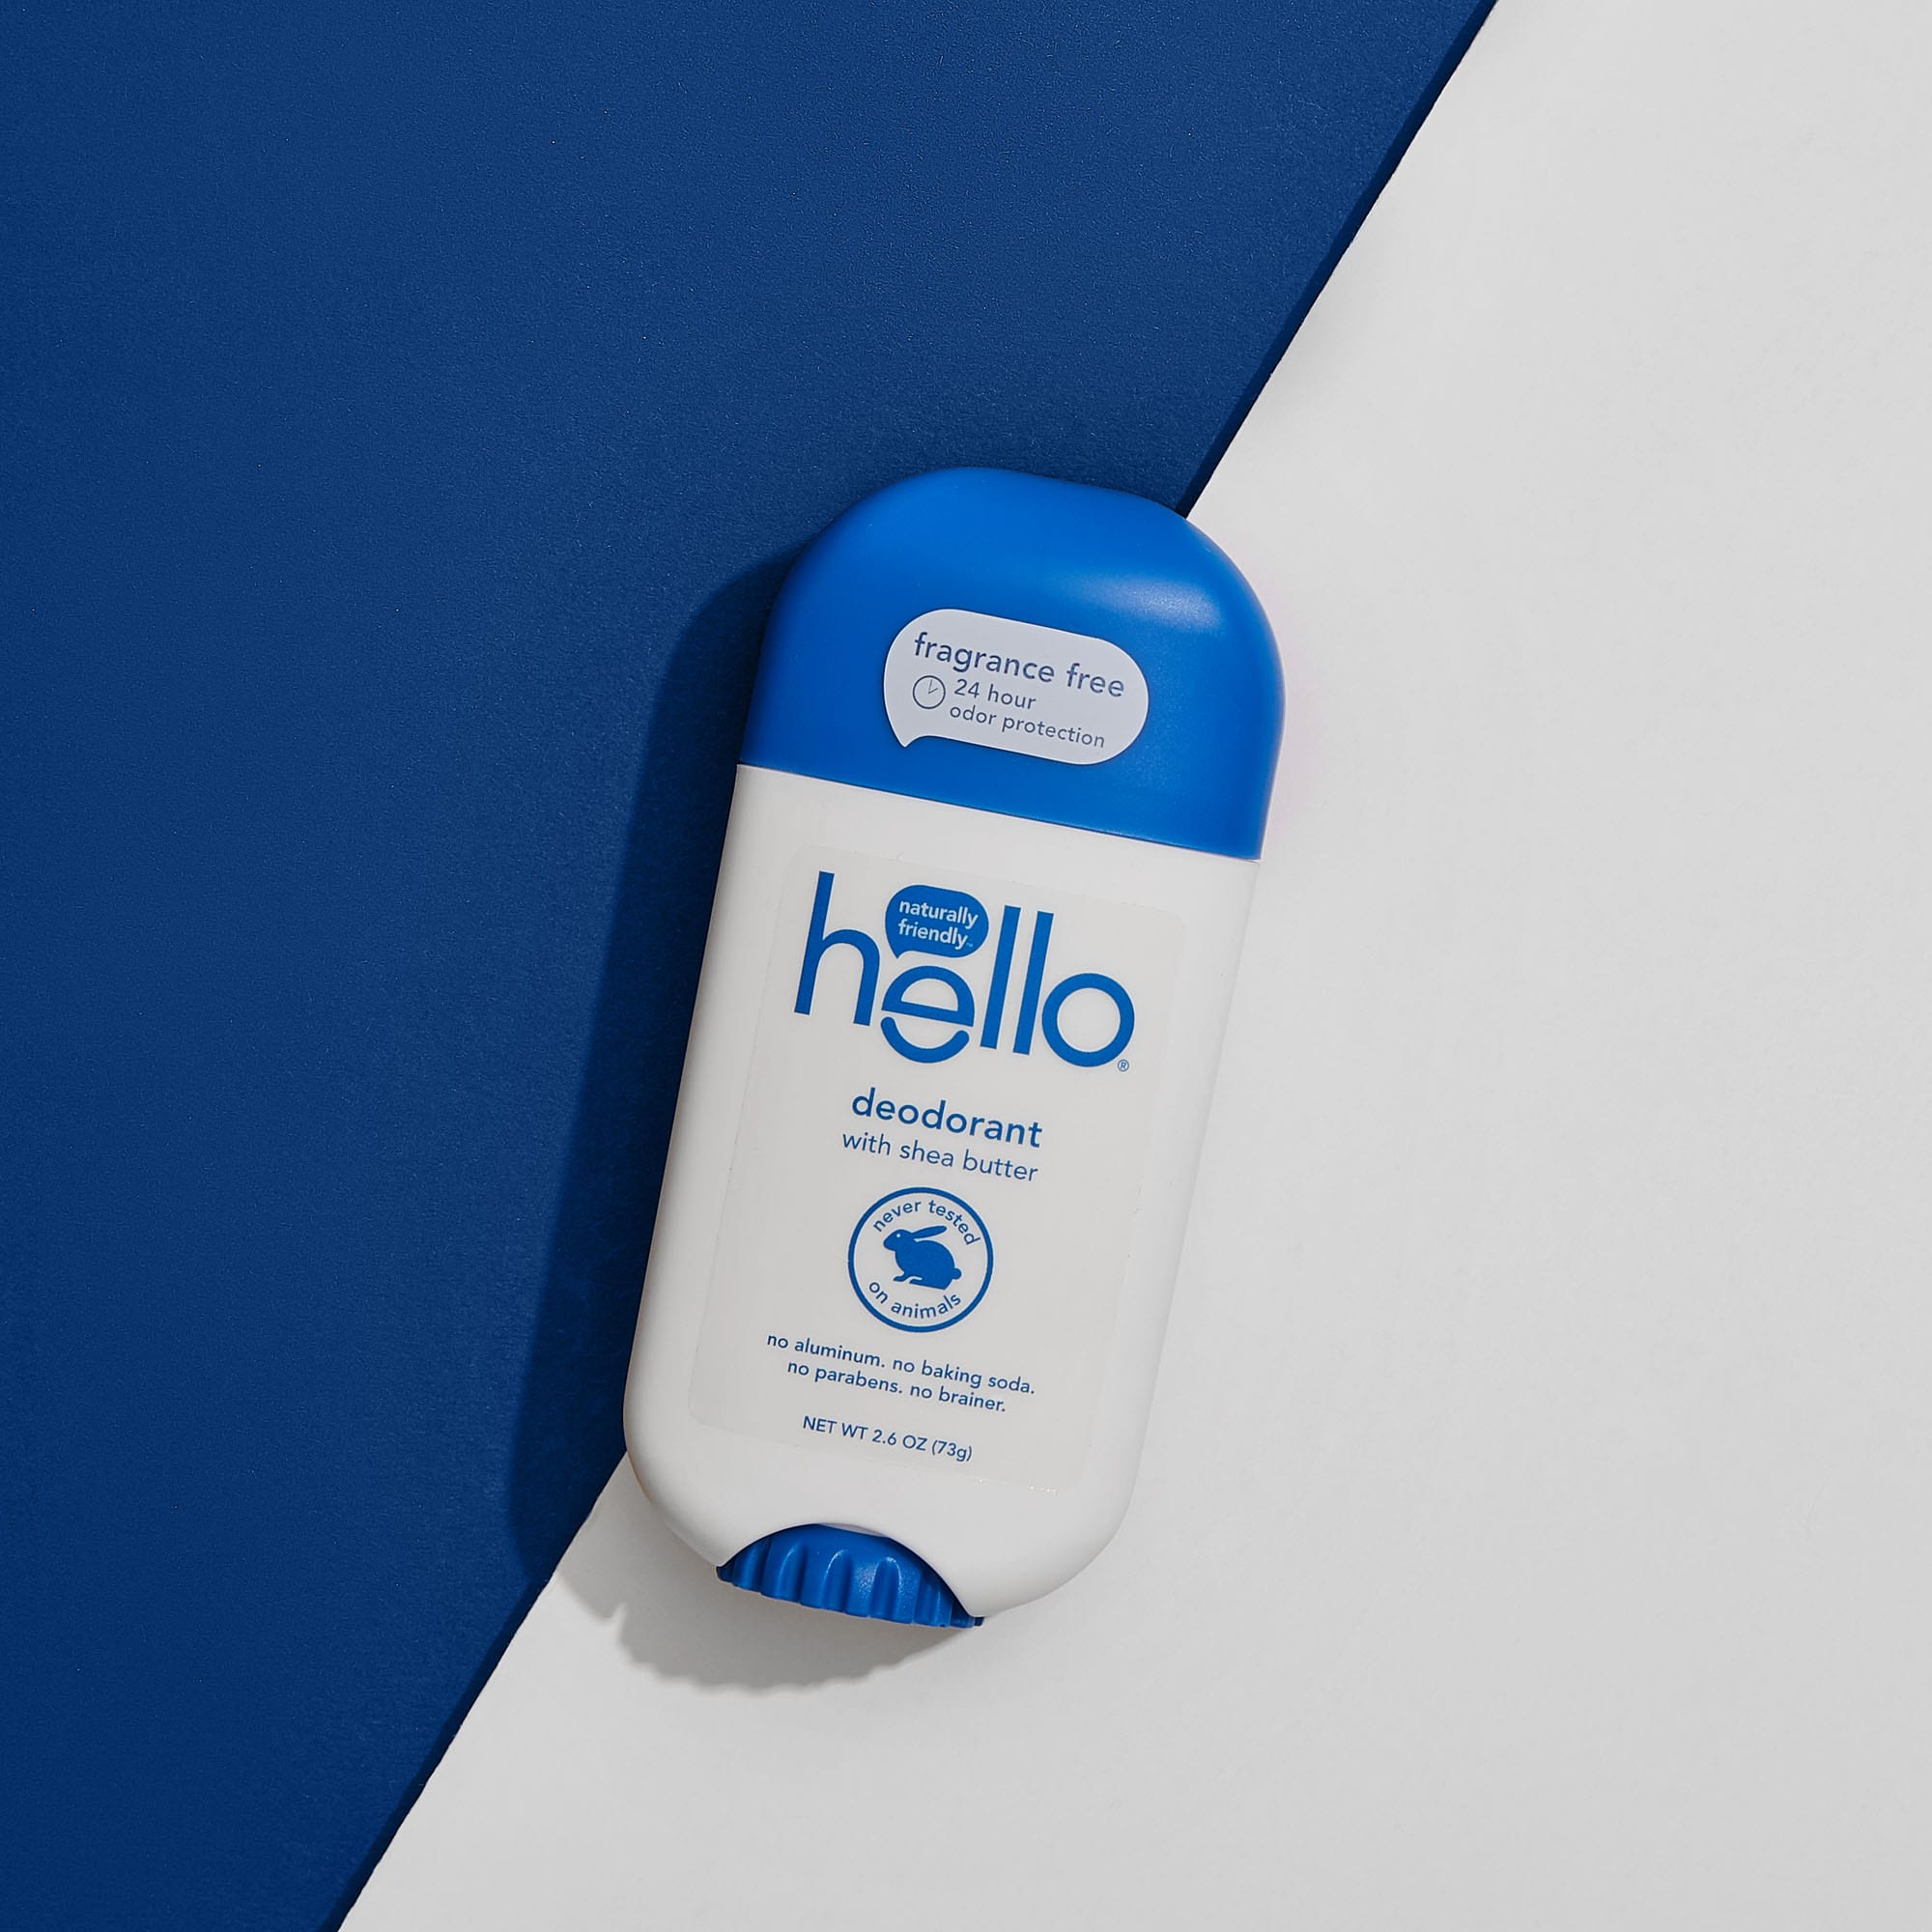 hello® fragrance free deodorant with shea butter